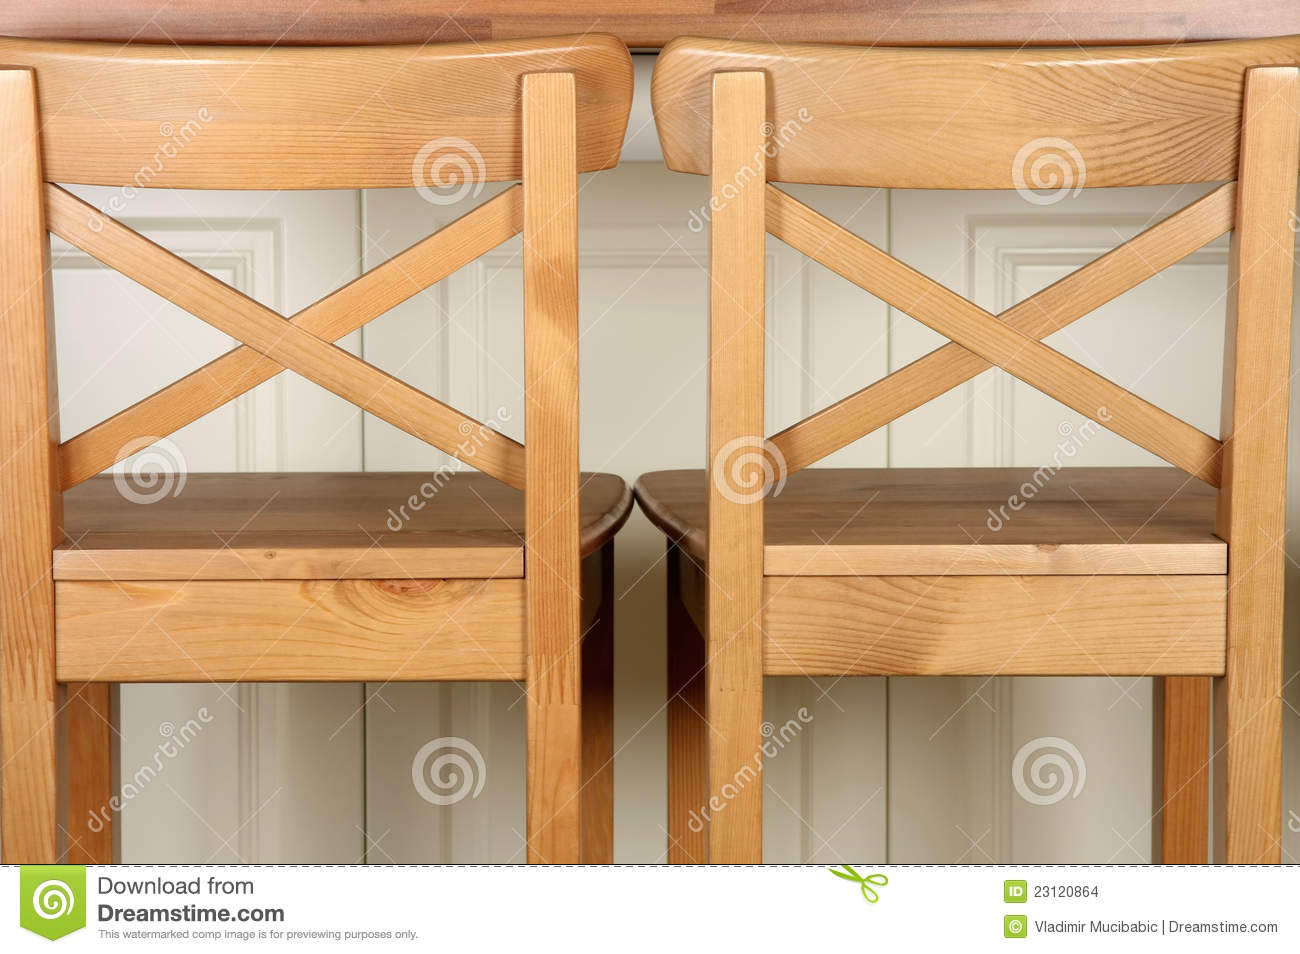 Wooden Bar Stool And Kitchen Counter Stock Images Image  : wooden bar stool kitchen counter 23120864 from www.dreamstime.com size 1300 x 954 jpeg 135kB